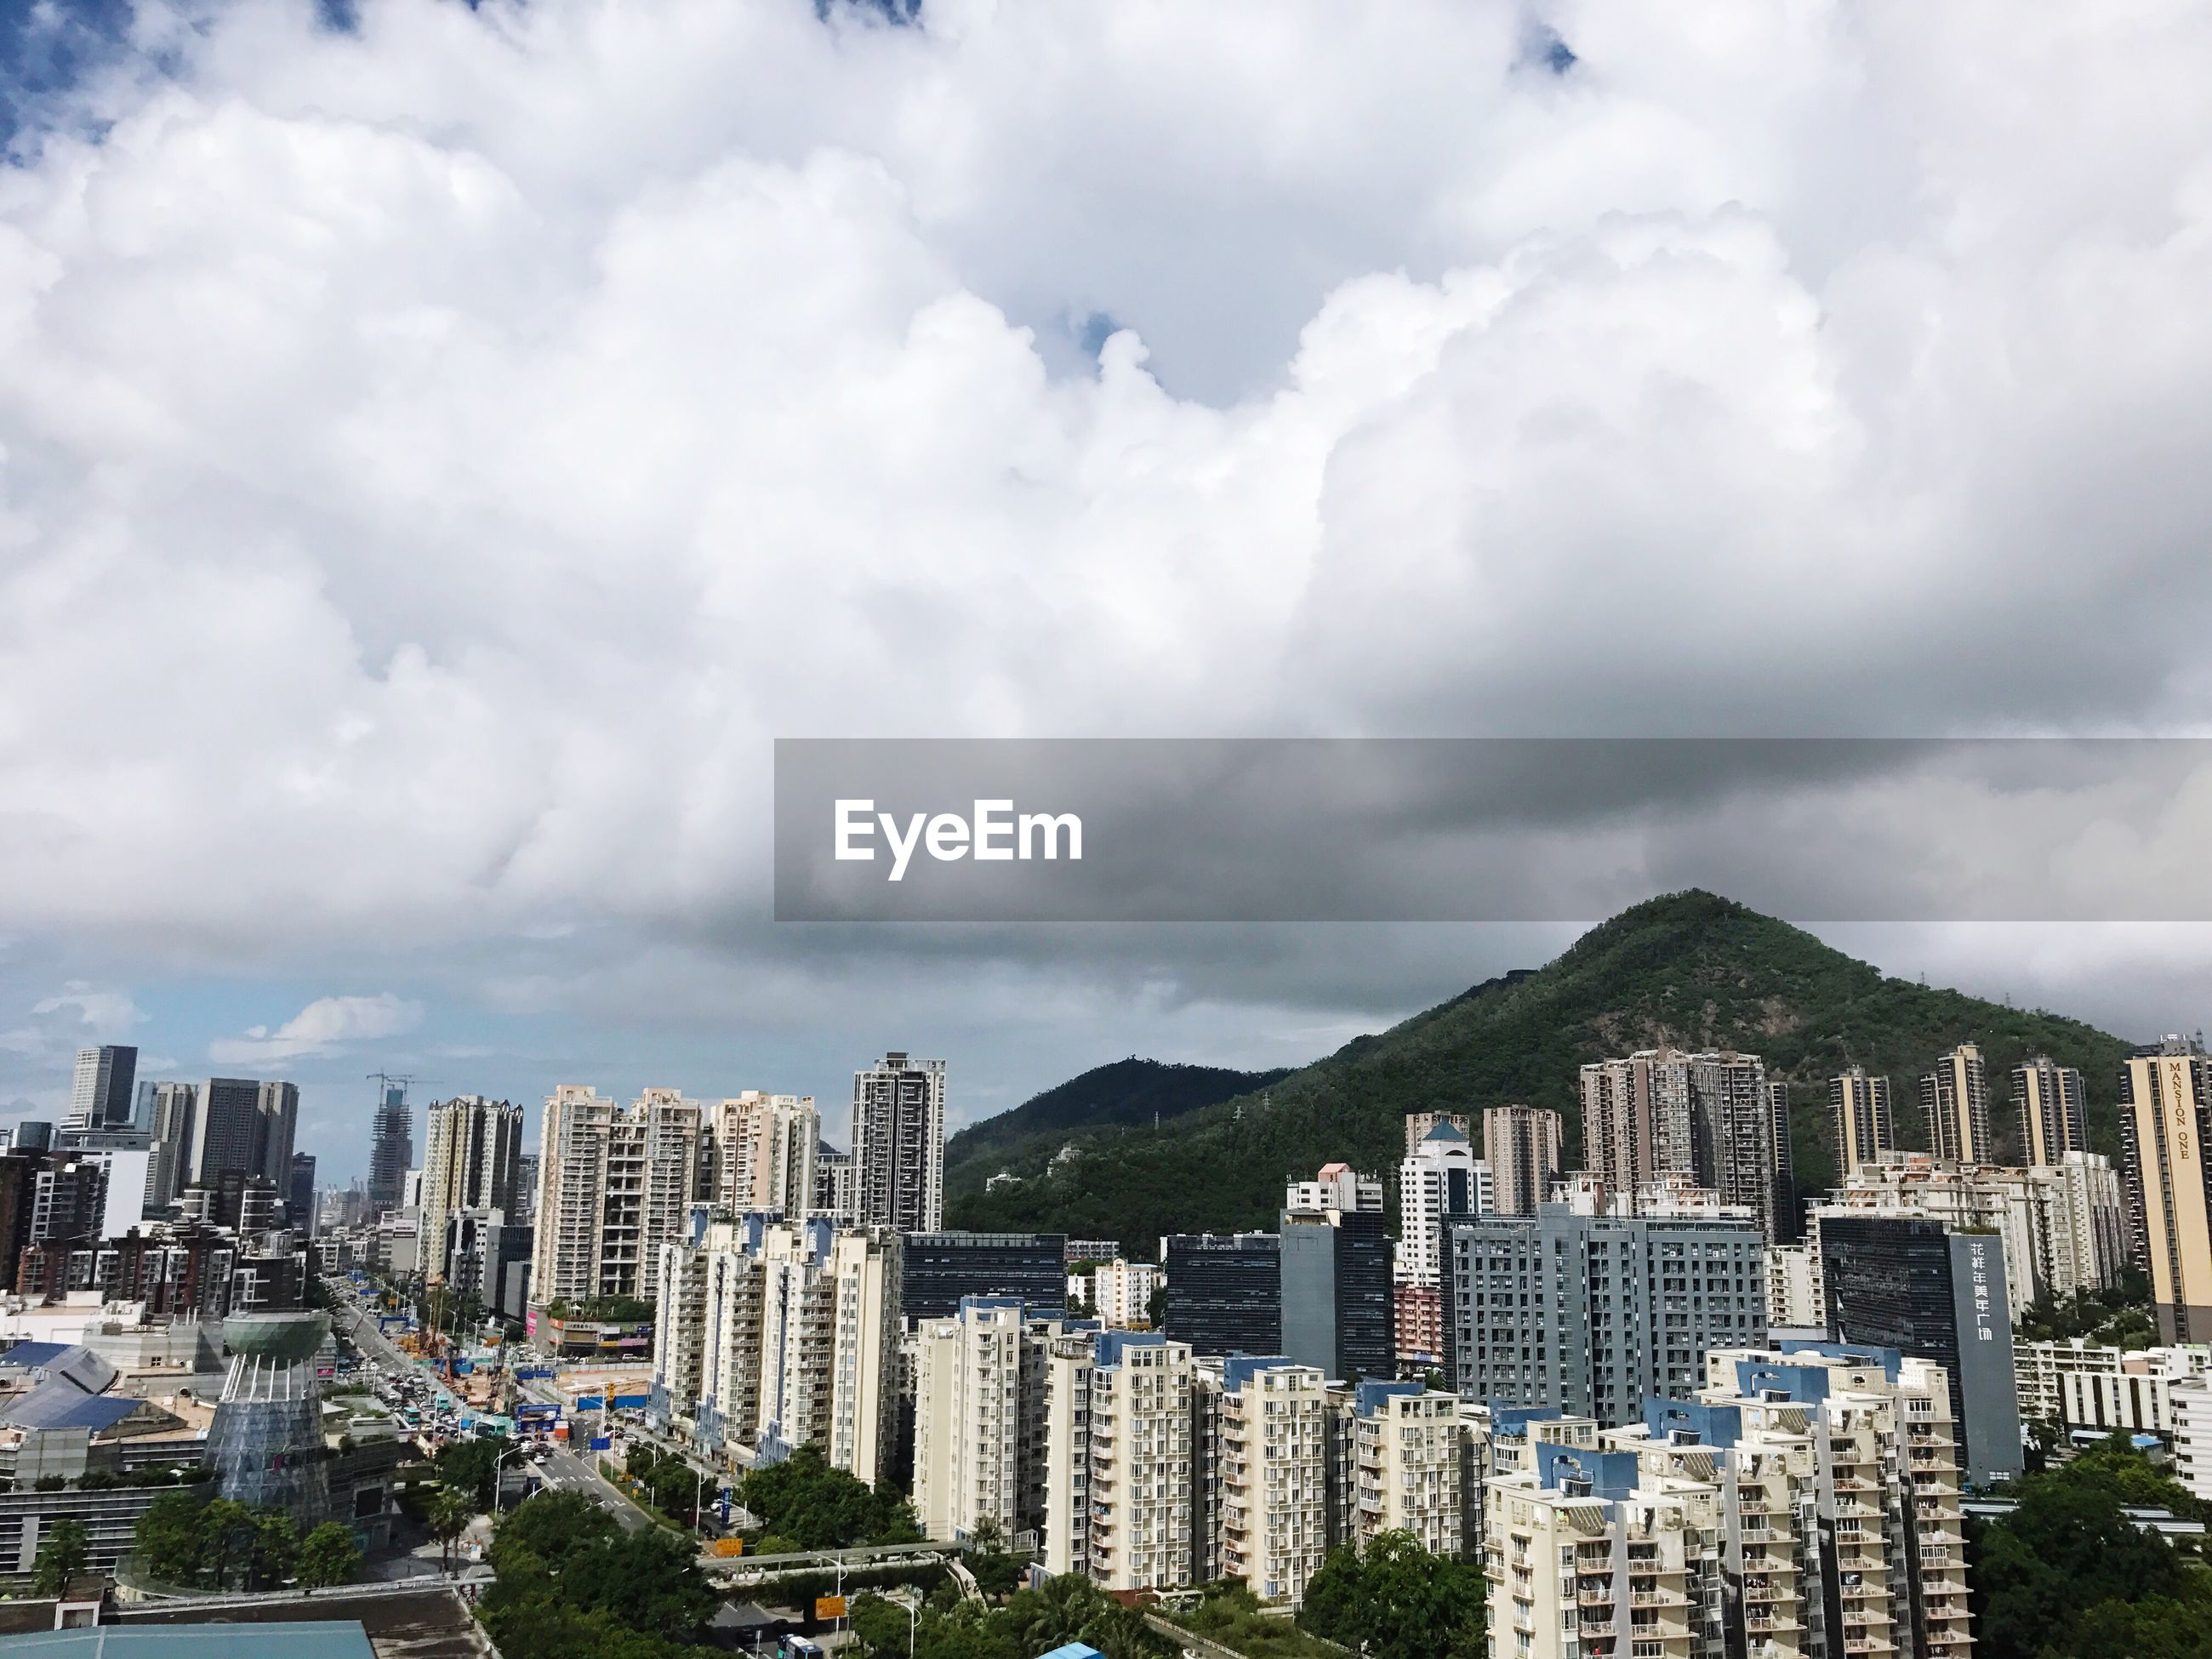 architecture, cityscape, building exterior, built structure, city, skyscraper, cloud - sky, crowded, mountain, sky, day, outdoors, modern, sea, urban skyline, nature